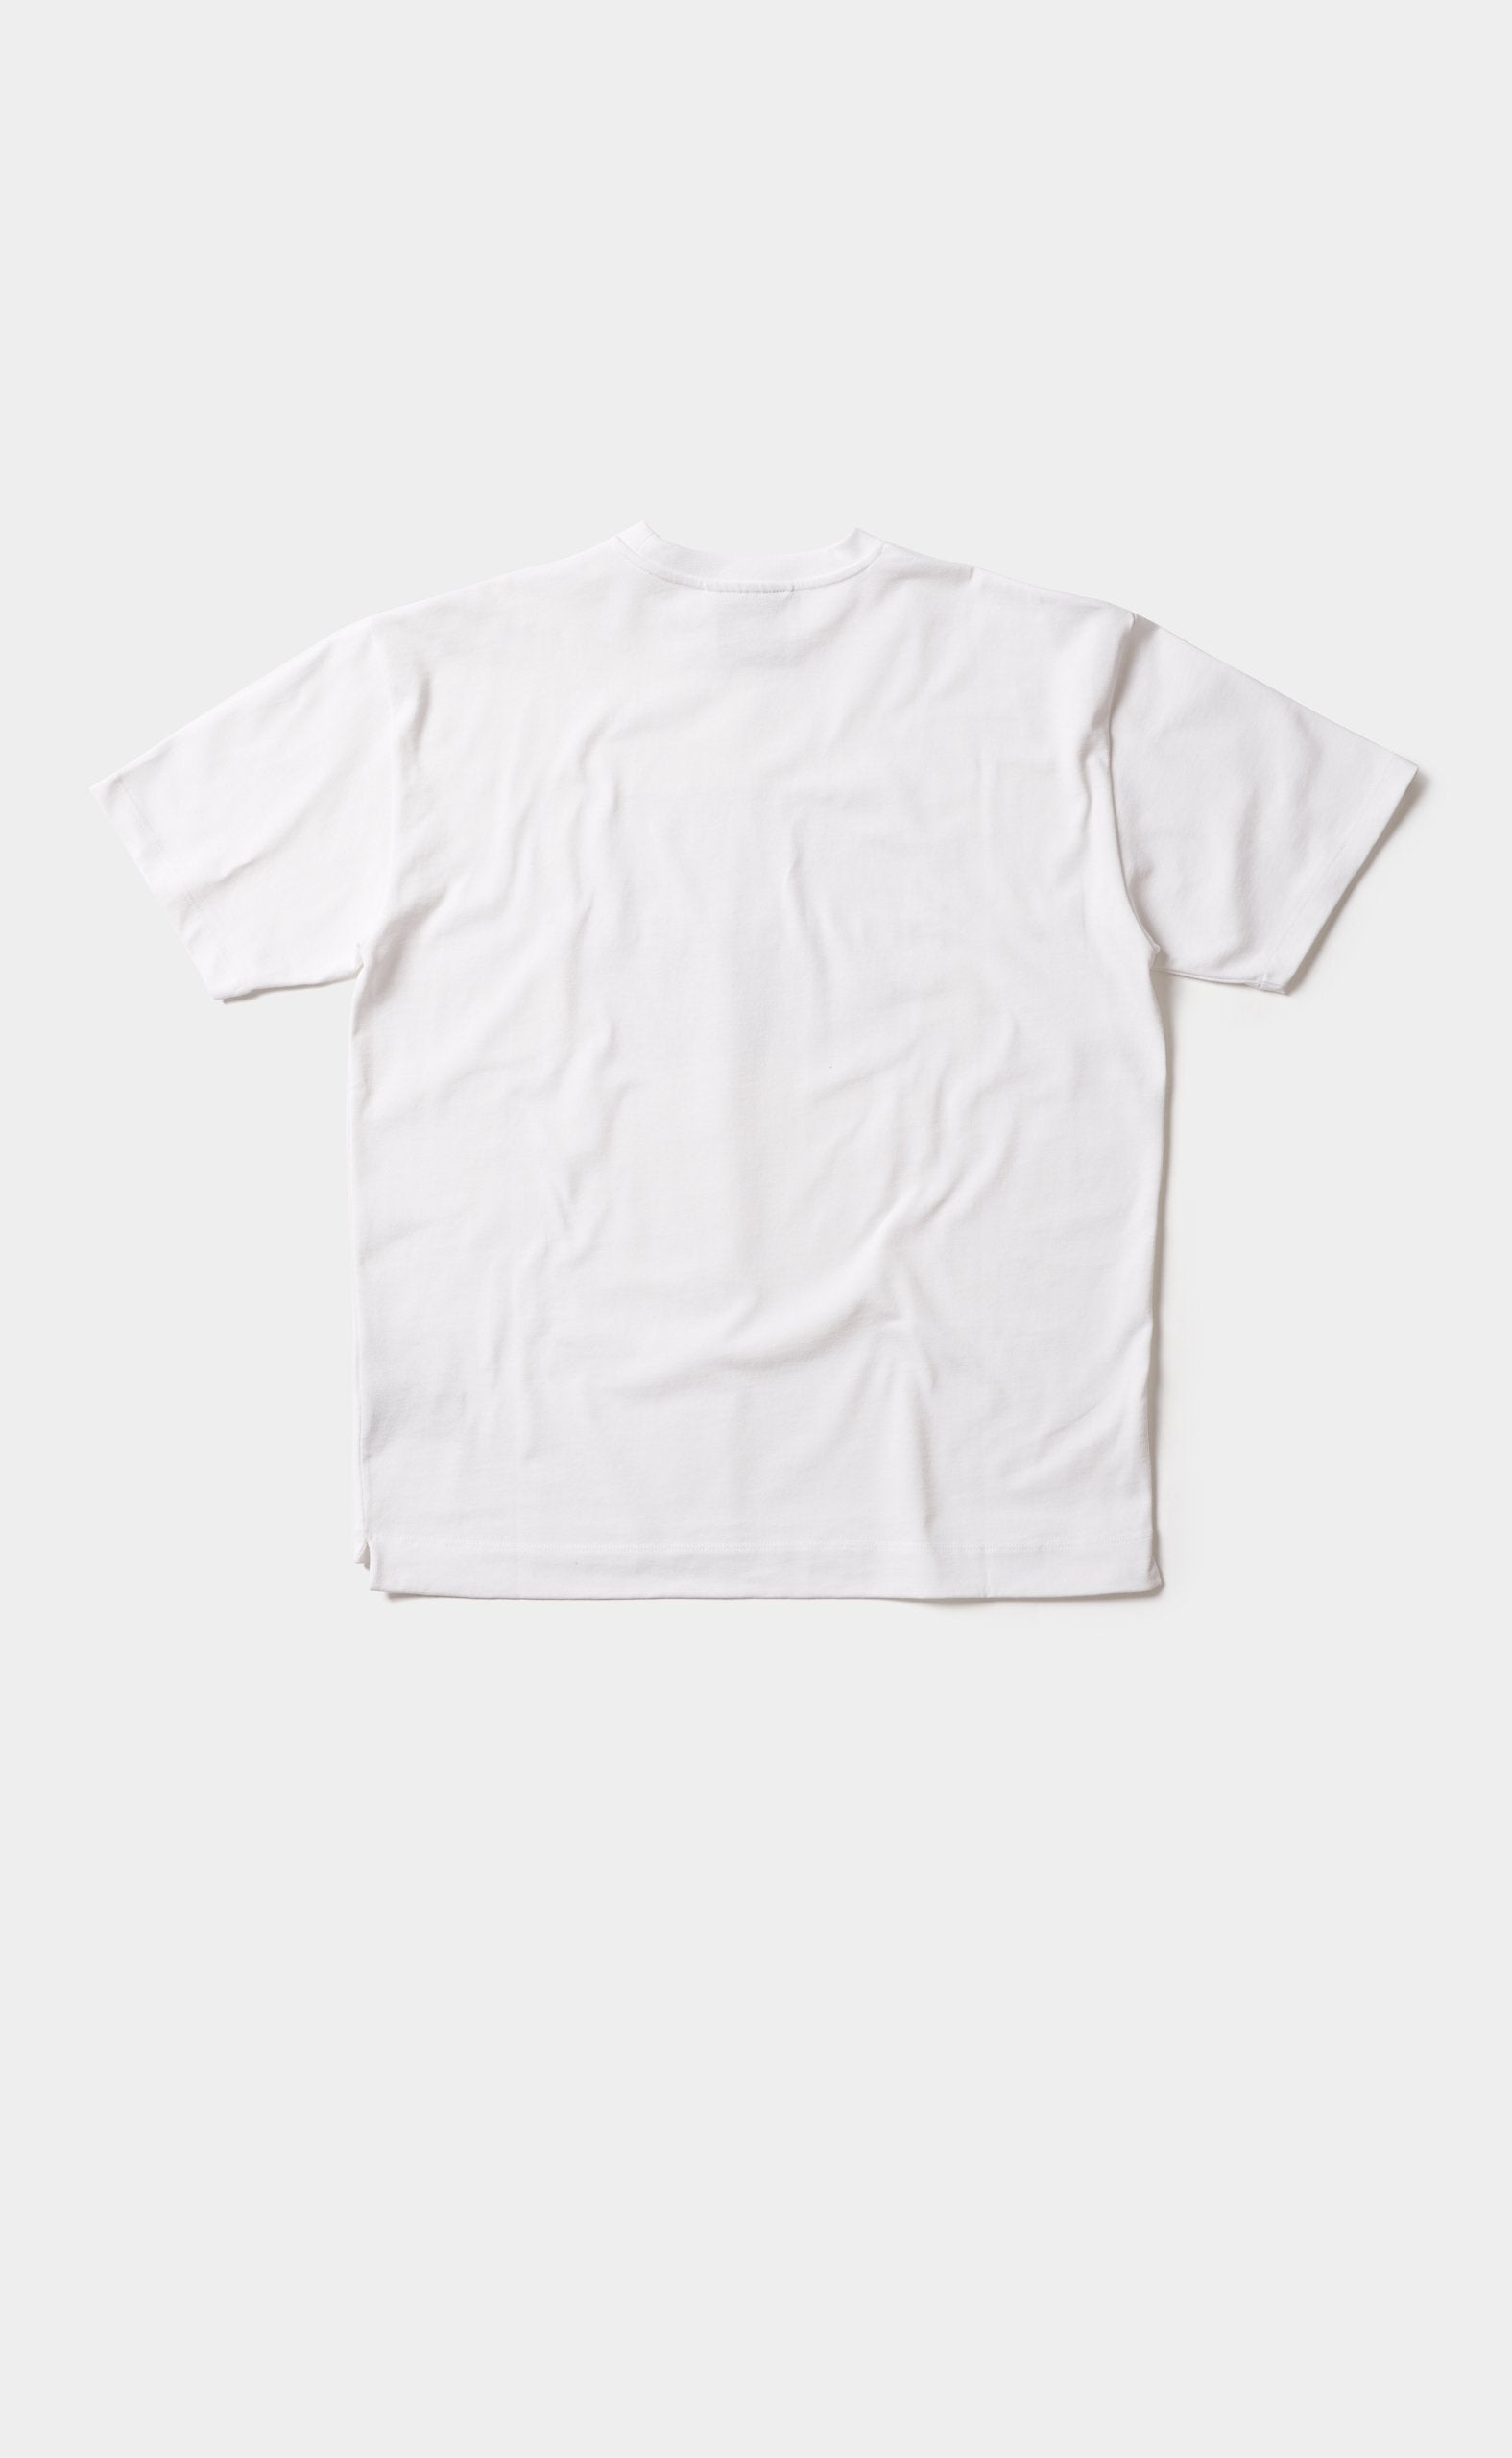 Graphic Tee Wall Street White